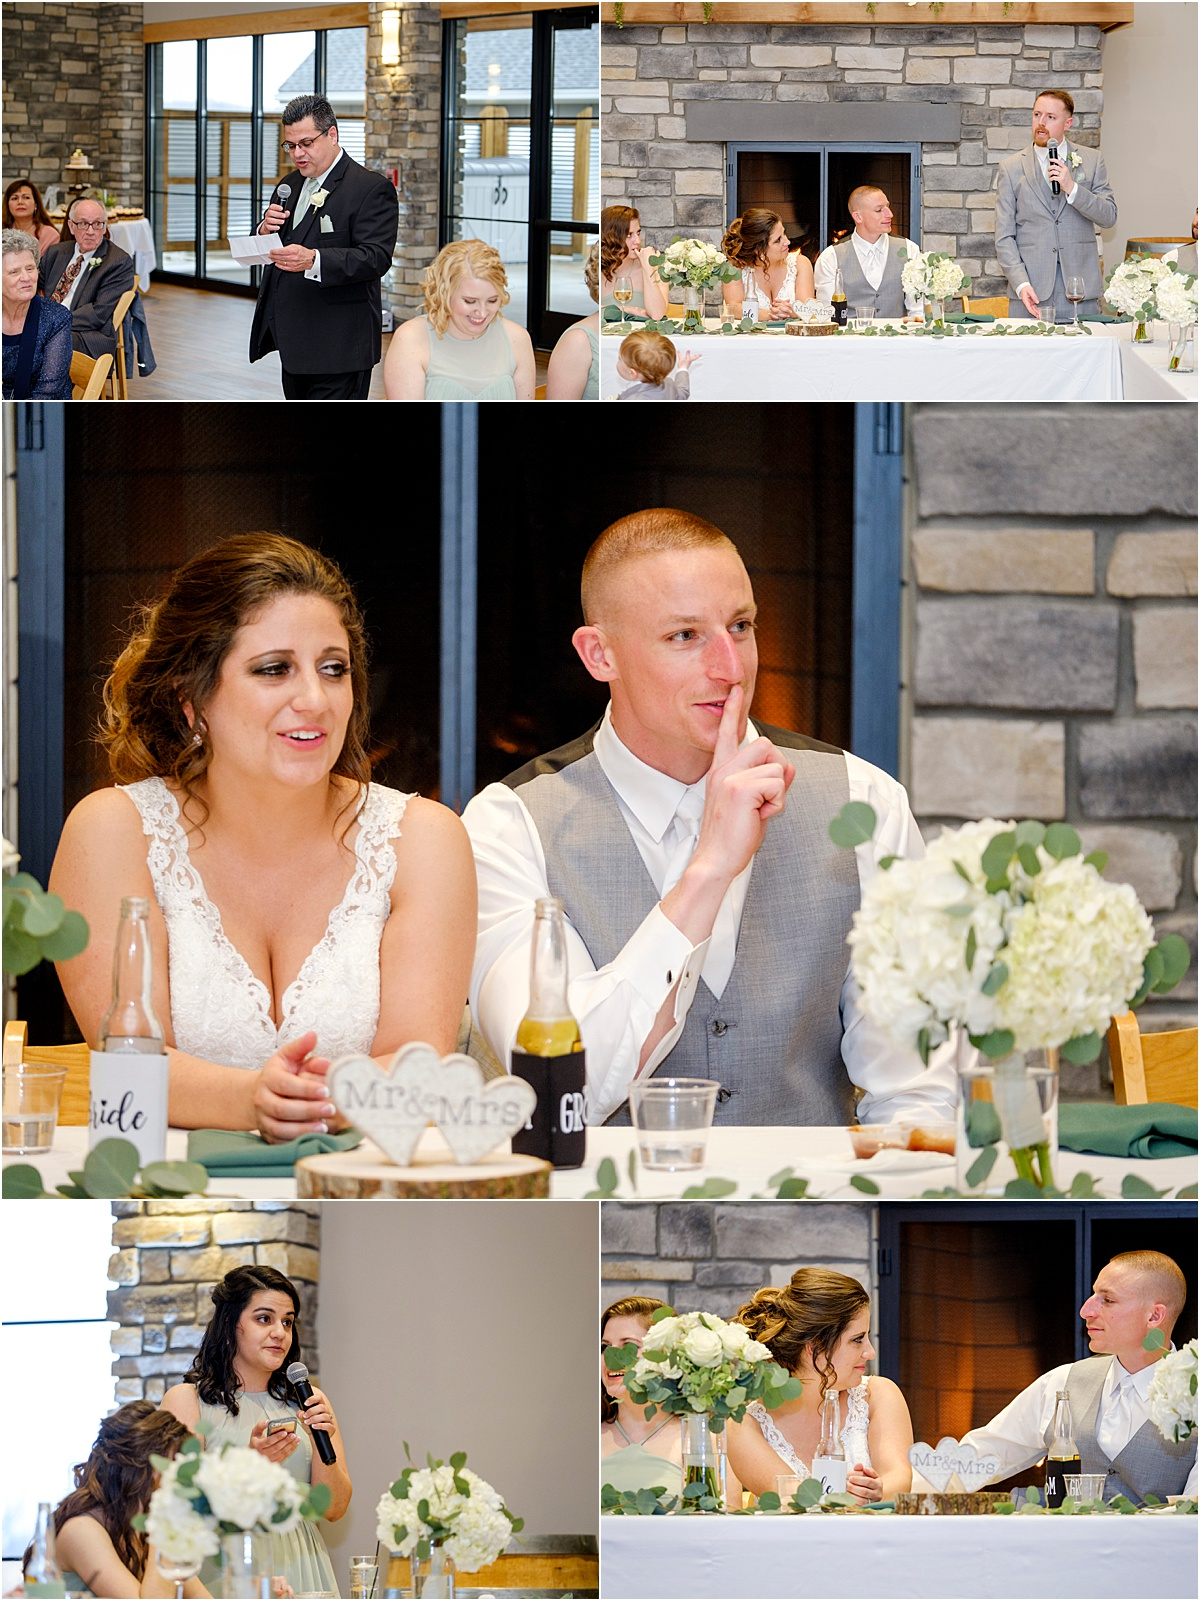 The-Sycamore-at-Mallow-Run-Wedding-Pictures-21.jpg